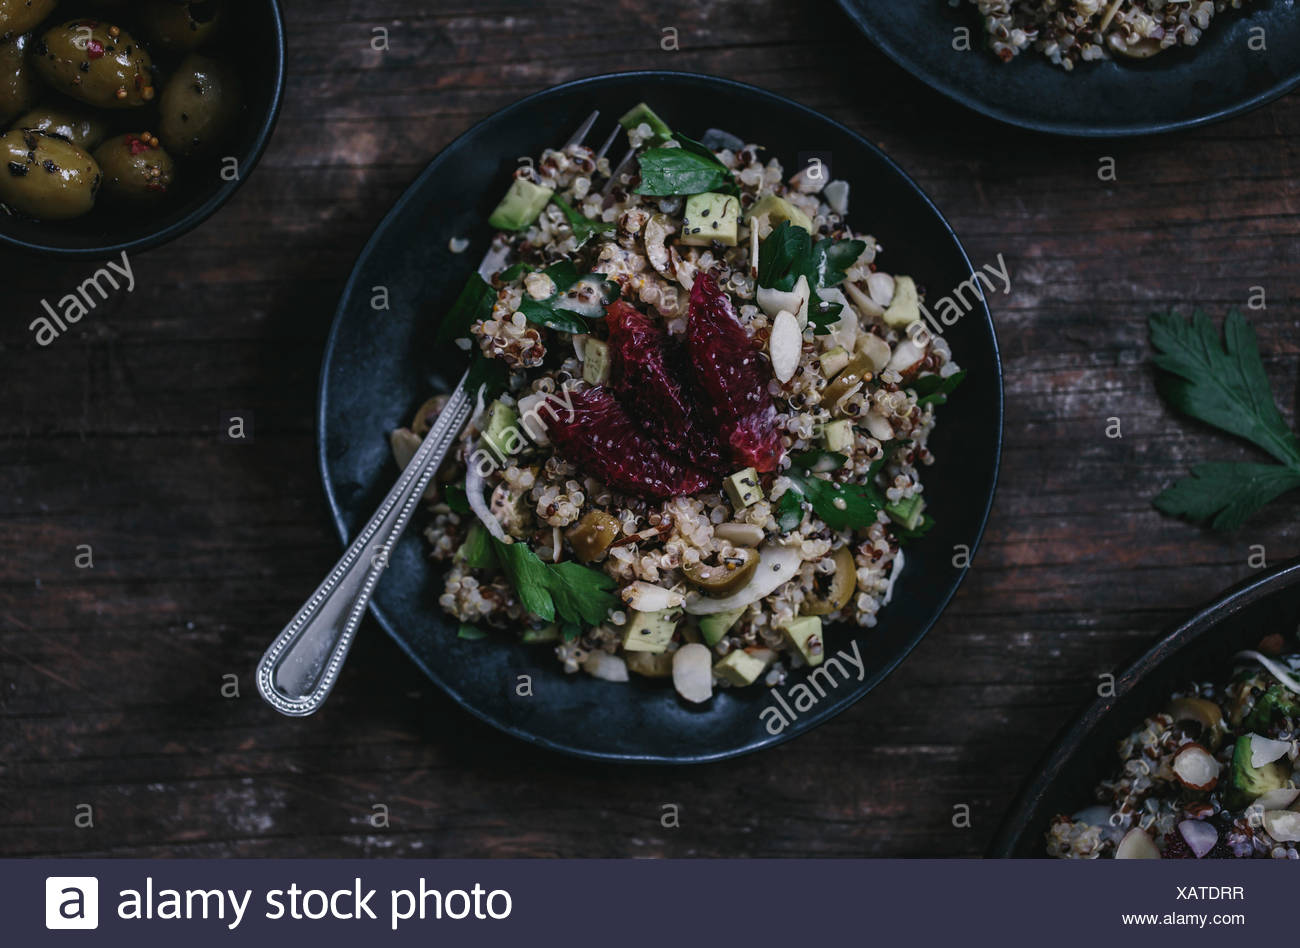 A one-person portion of the Avocado and Quinoa salad with blood oranges and fennel is photographed from the top. - Stock Image